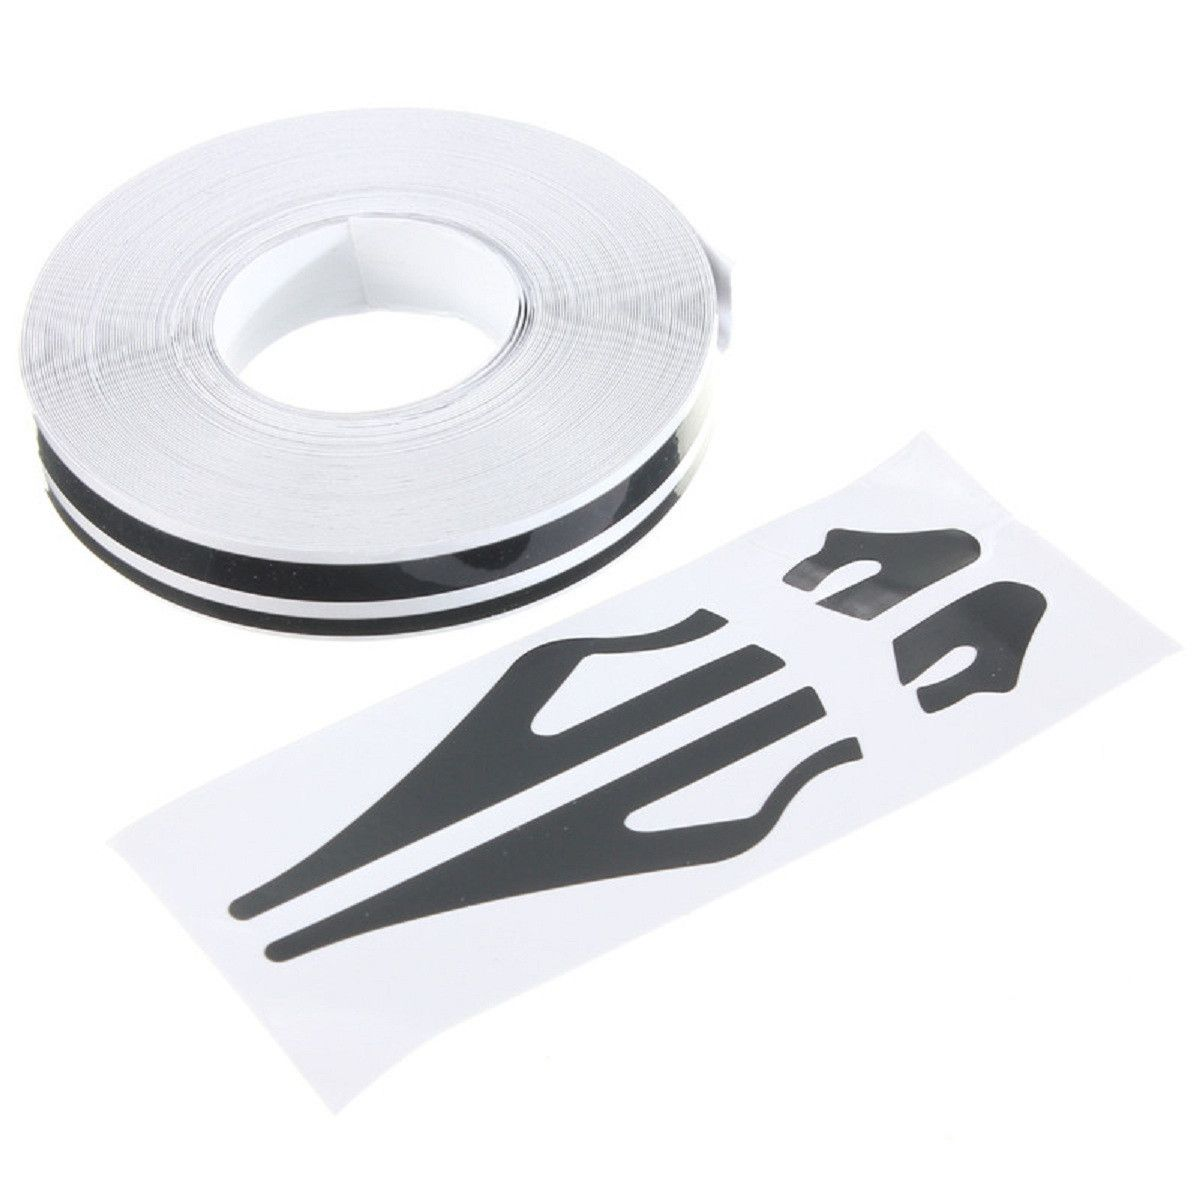 1 2inch Pin Striping Stripe Vinyl Tape Decals Stickers 12mm For Cars Motorcycles Cars Motorcycles Cat Motorcycle Cars